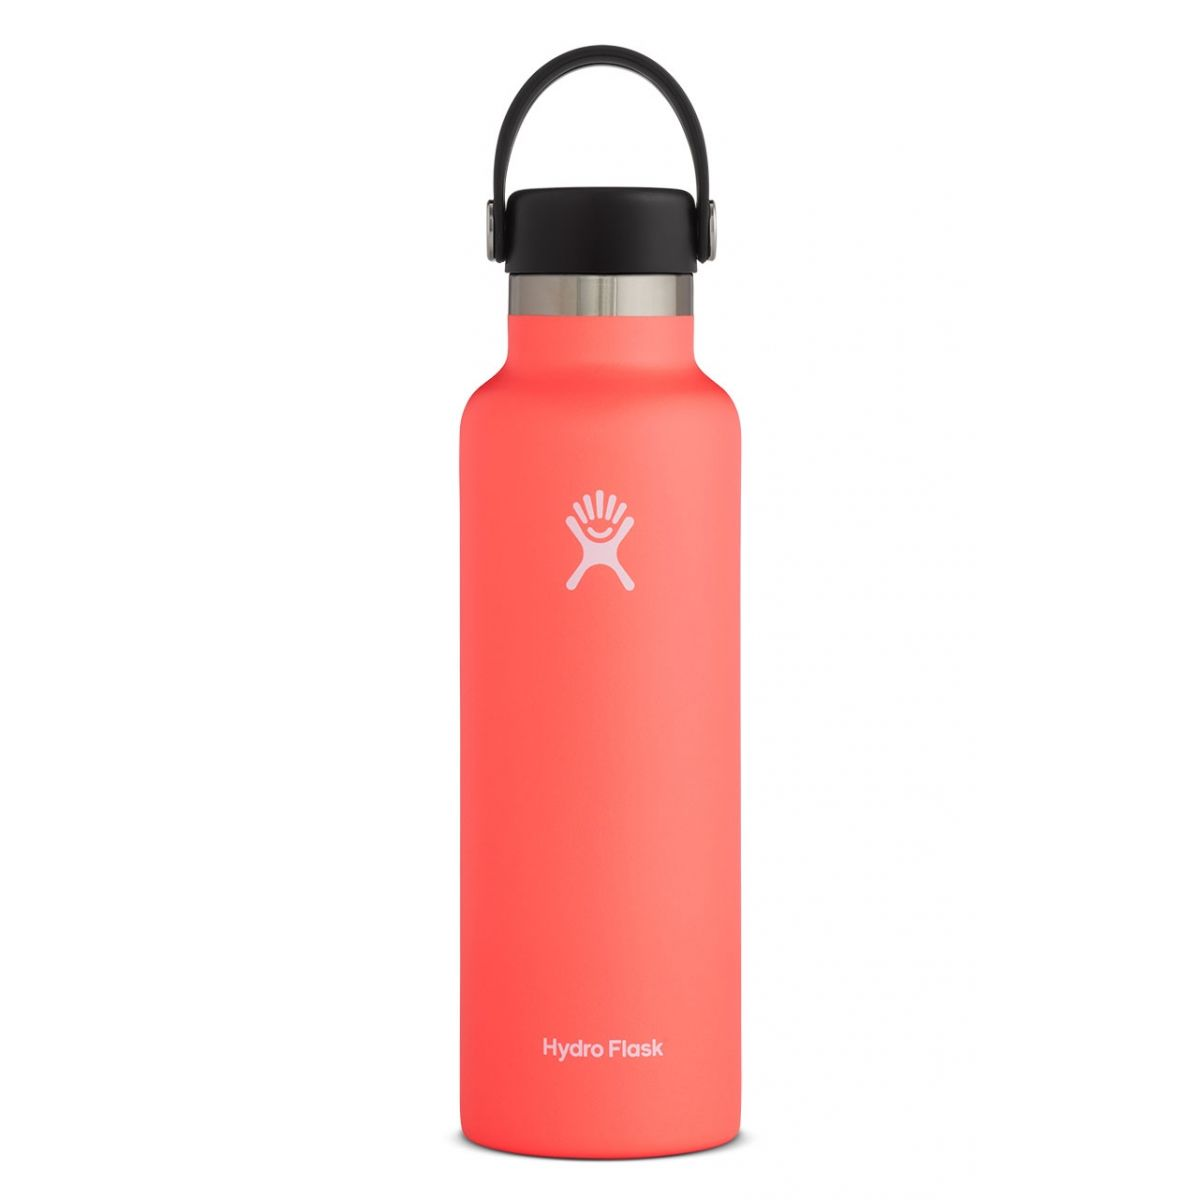 Image For Hydroflask Insulated Water Bottle, Hibiscus